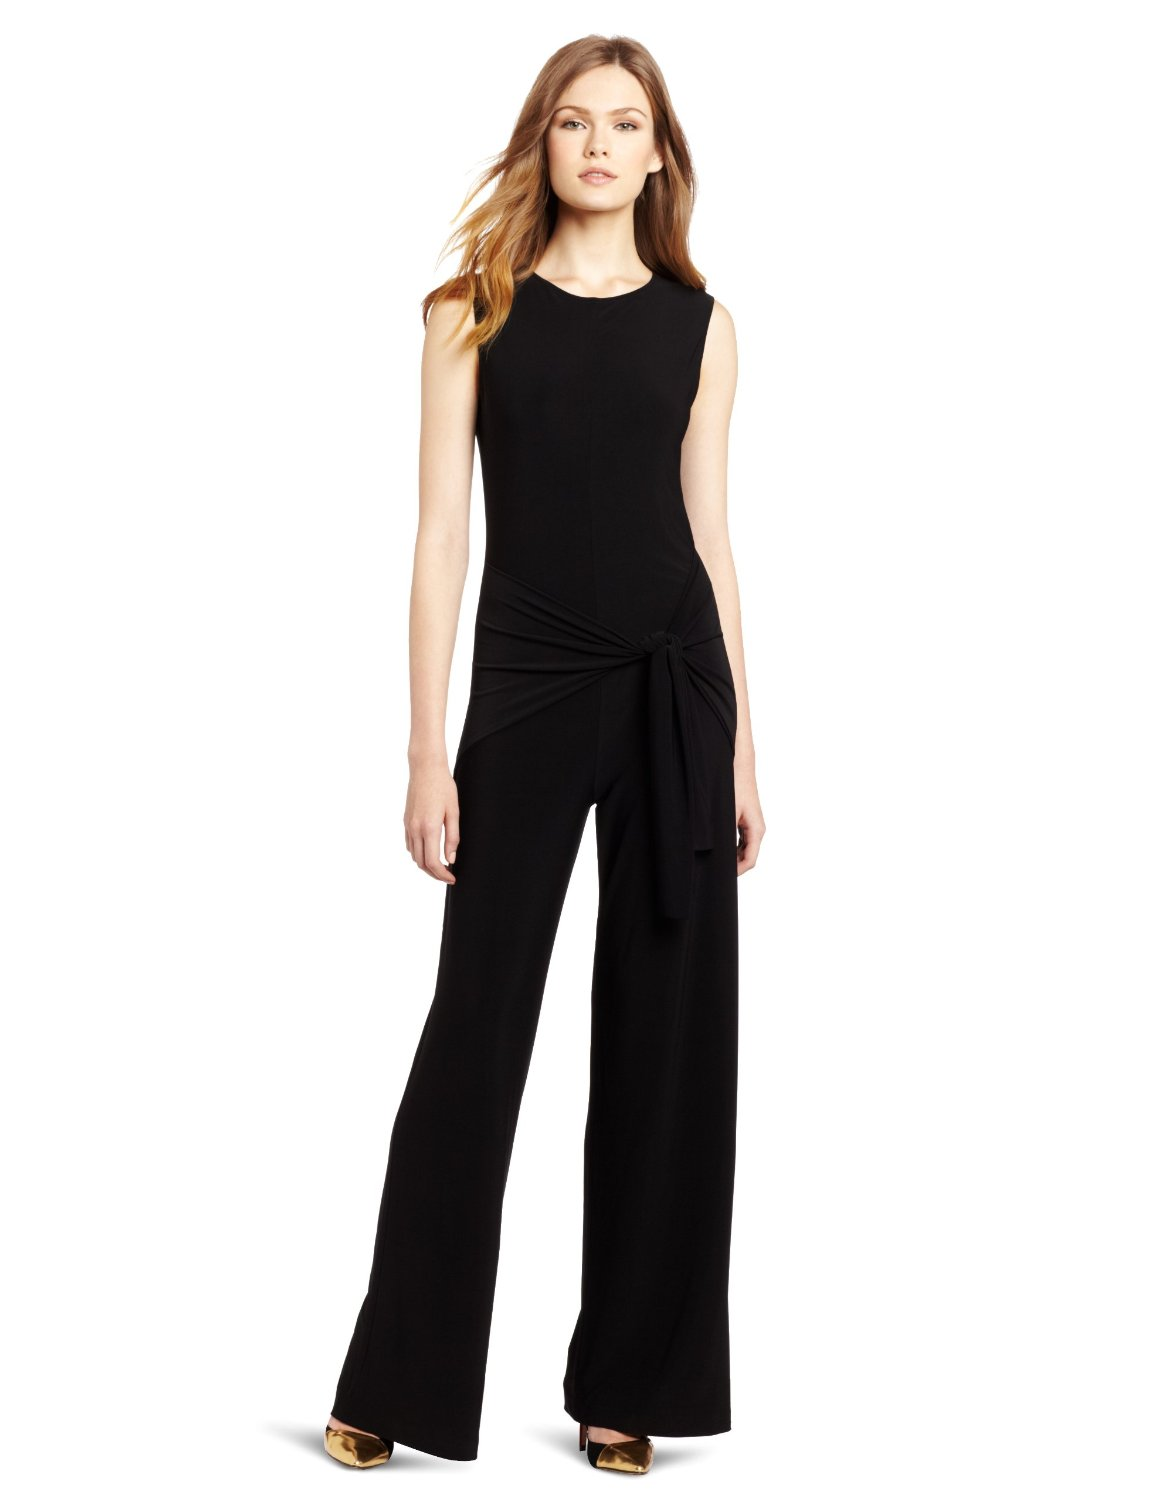 Shop women's jumpsuits & rompers at 10mins.ml Discover a stylish selection of the latest brand name and designer fashions all at a great value.